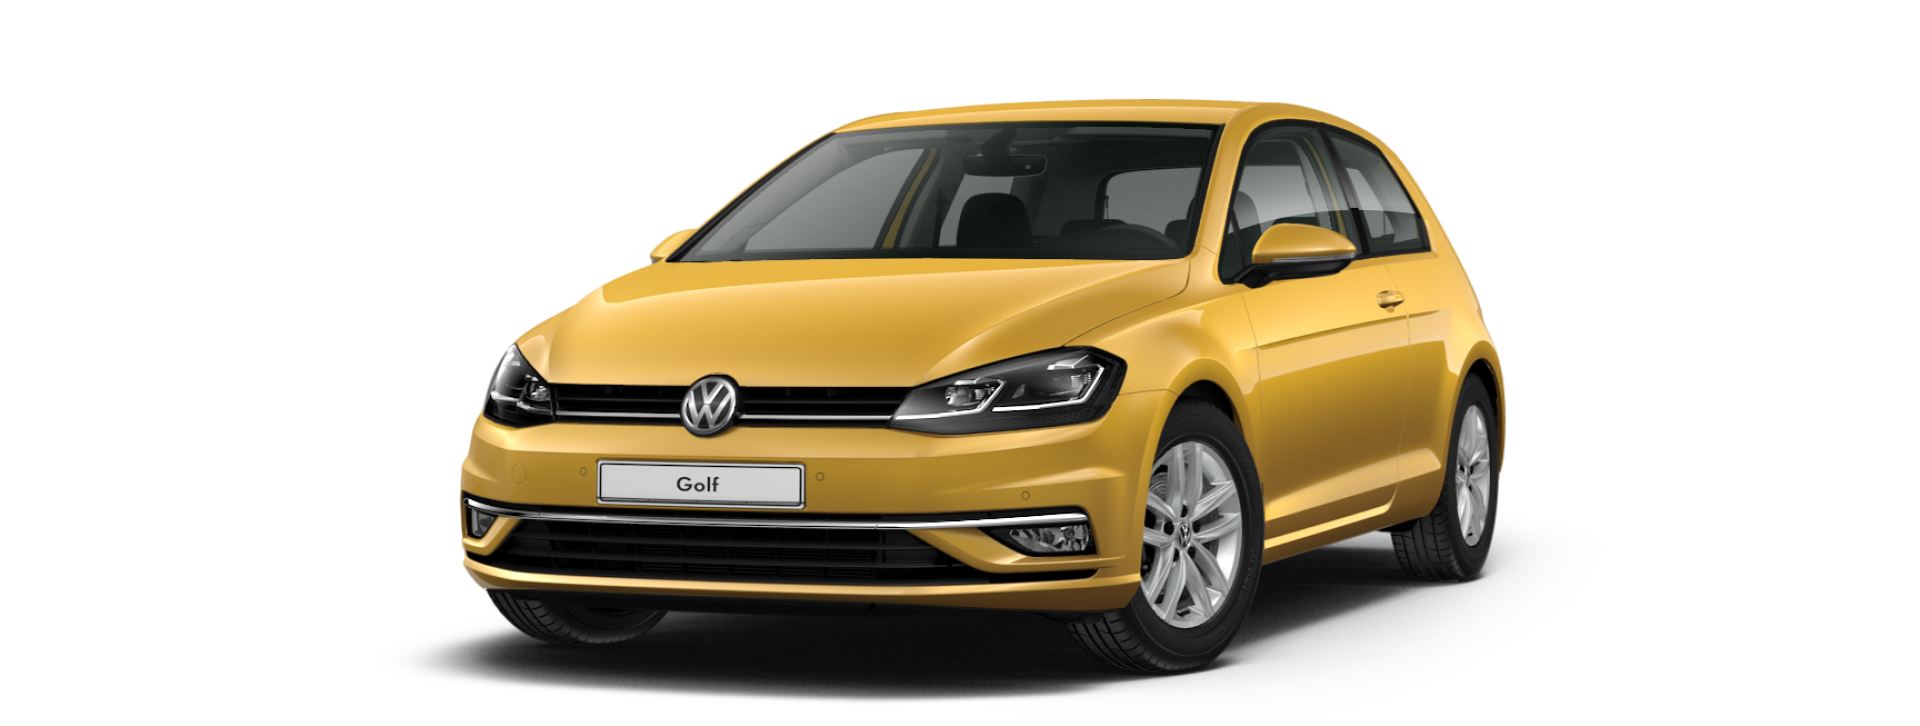 forum volkswagen golf 7 tanch it coffre volkswagen. Black Bedroom Furniture Sets. Home Design Ideas